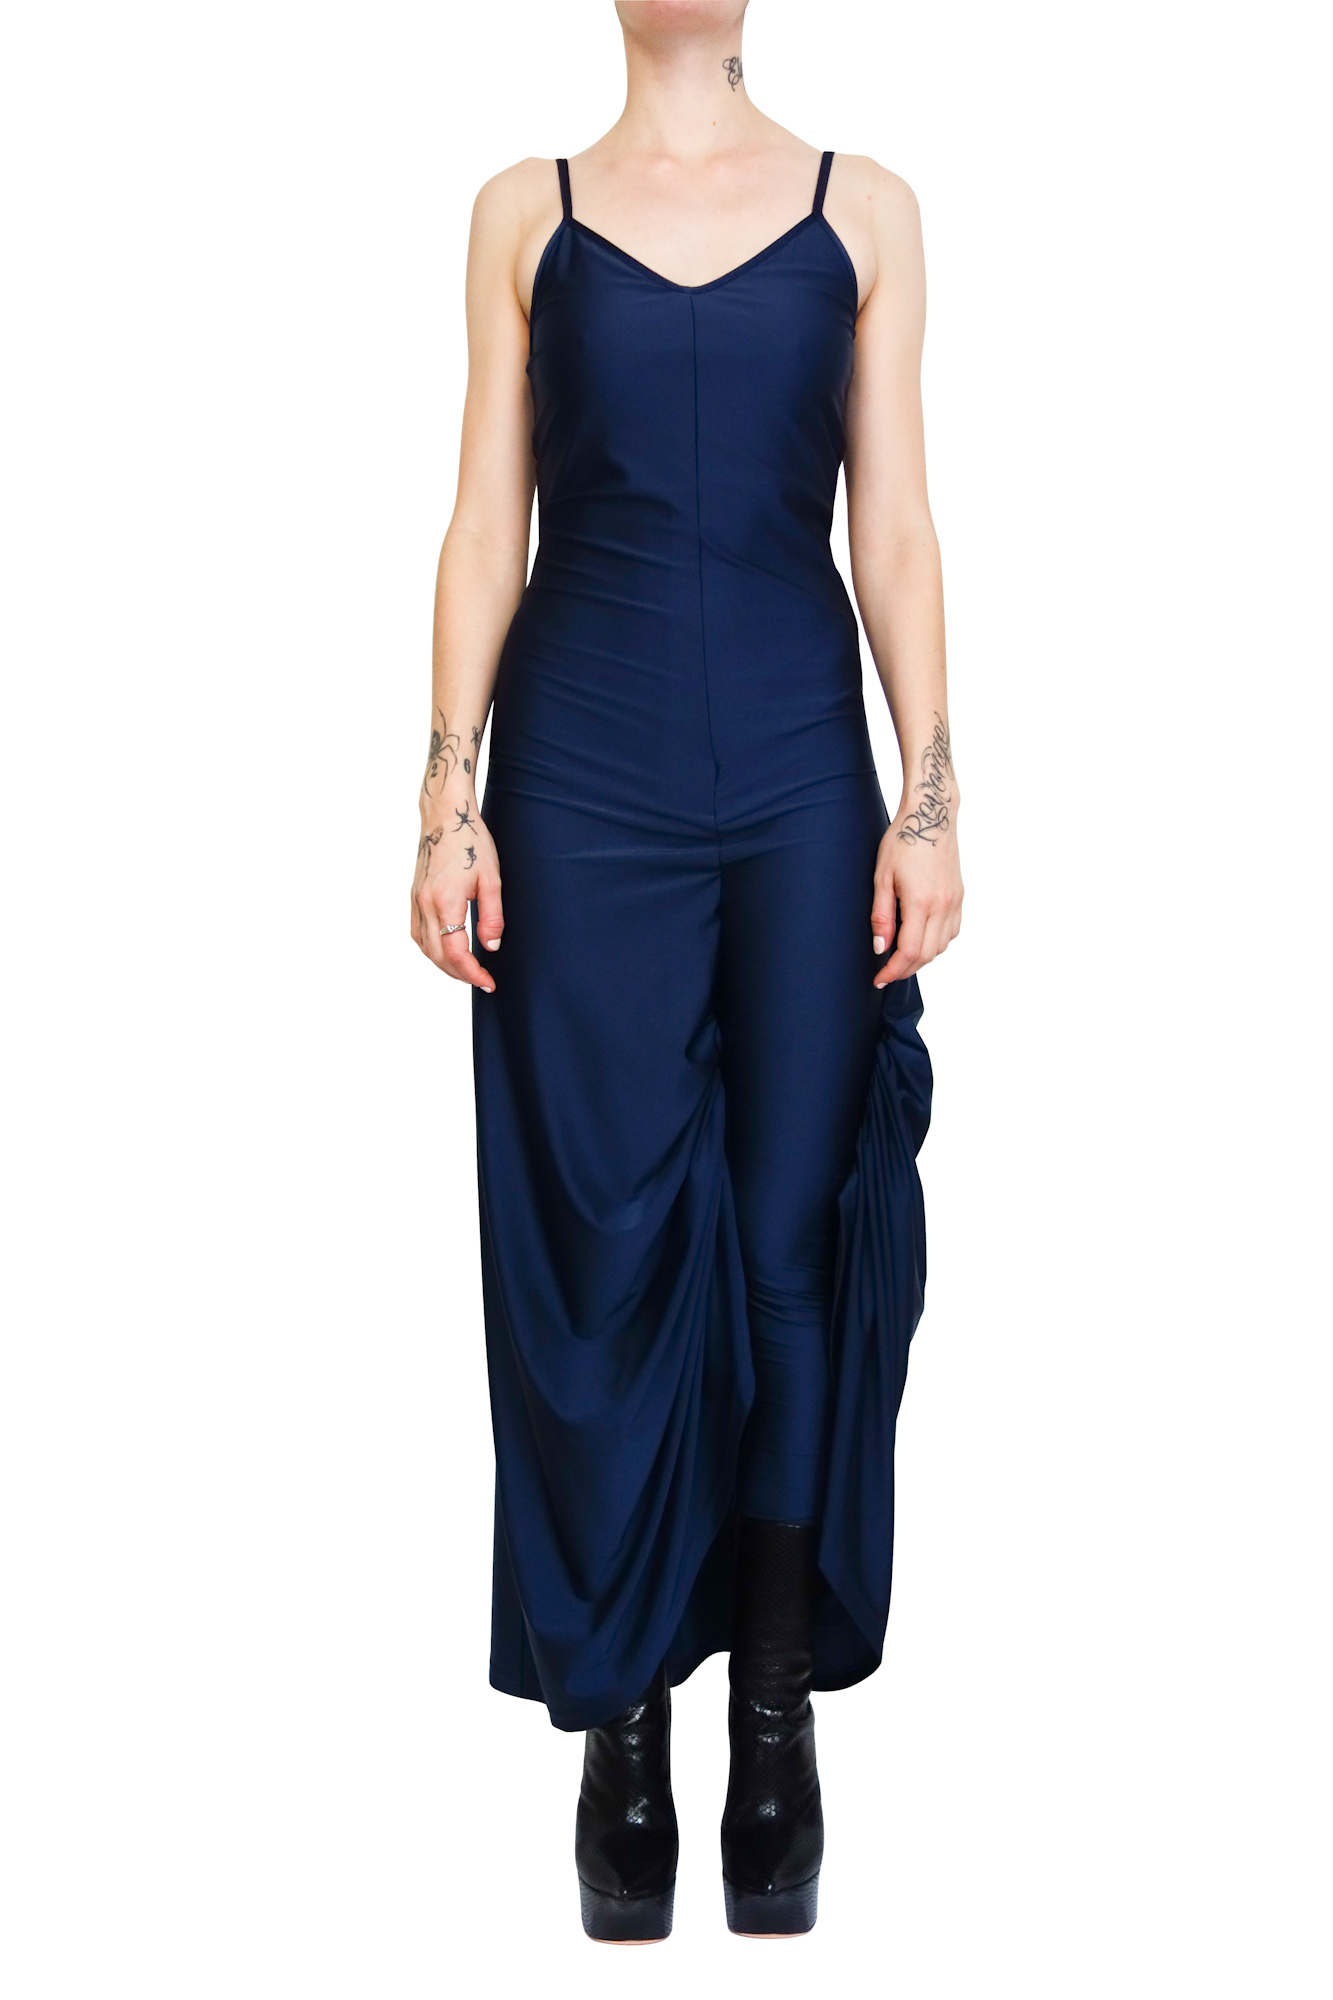 Y/PROJECT Draped Pant Dress $1195 -